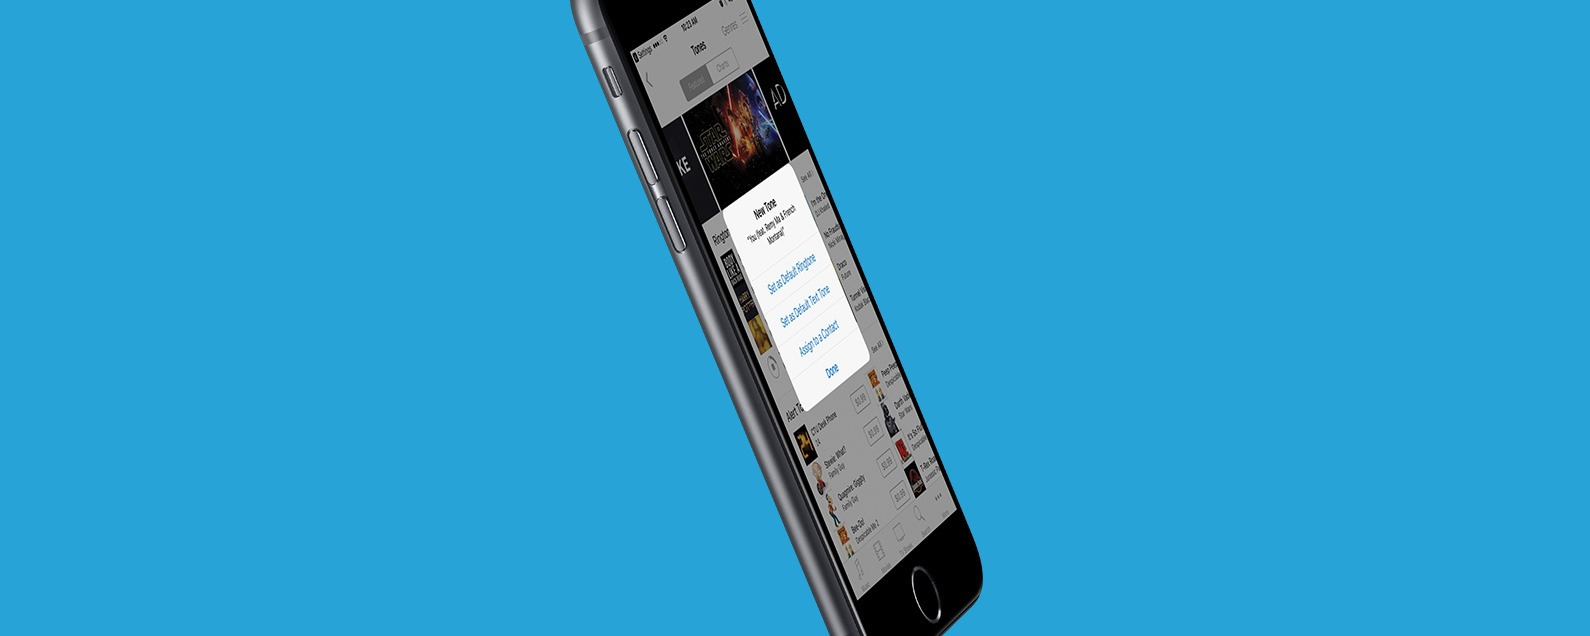 How to Make Your Favorite Song Your iPhone Ringtone